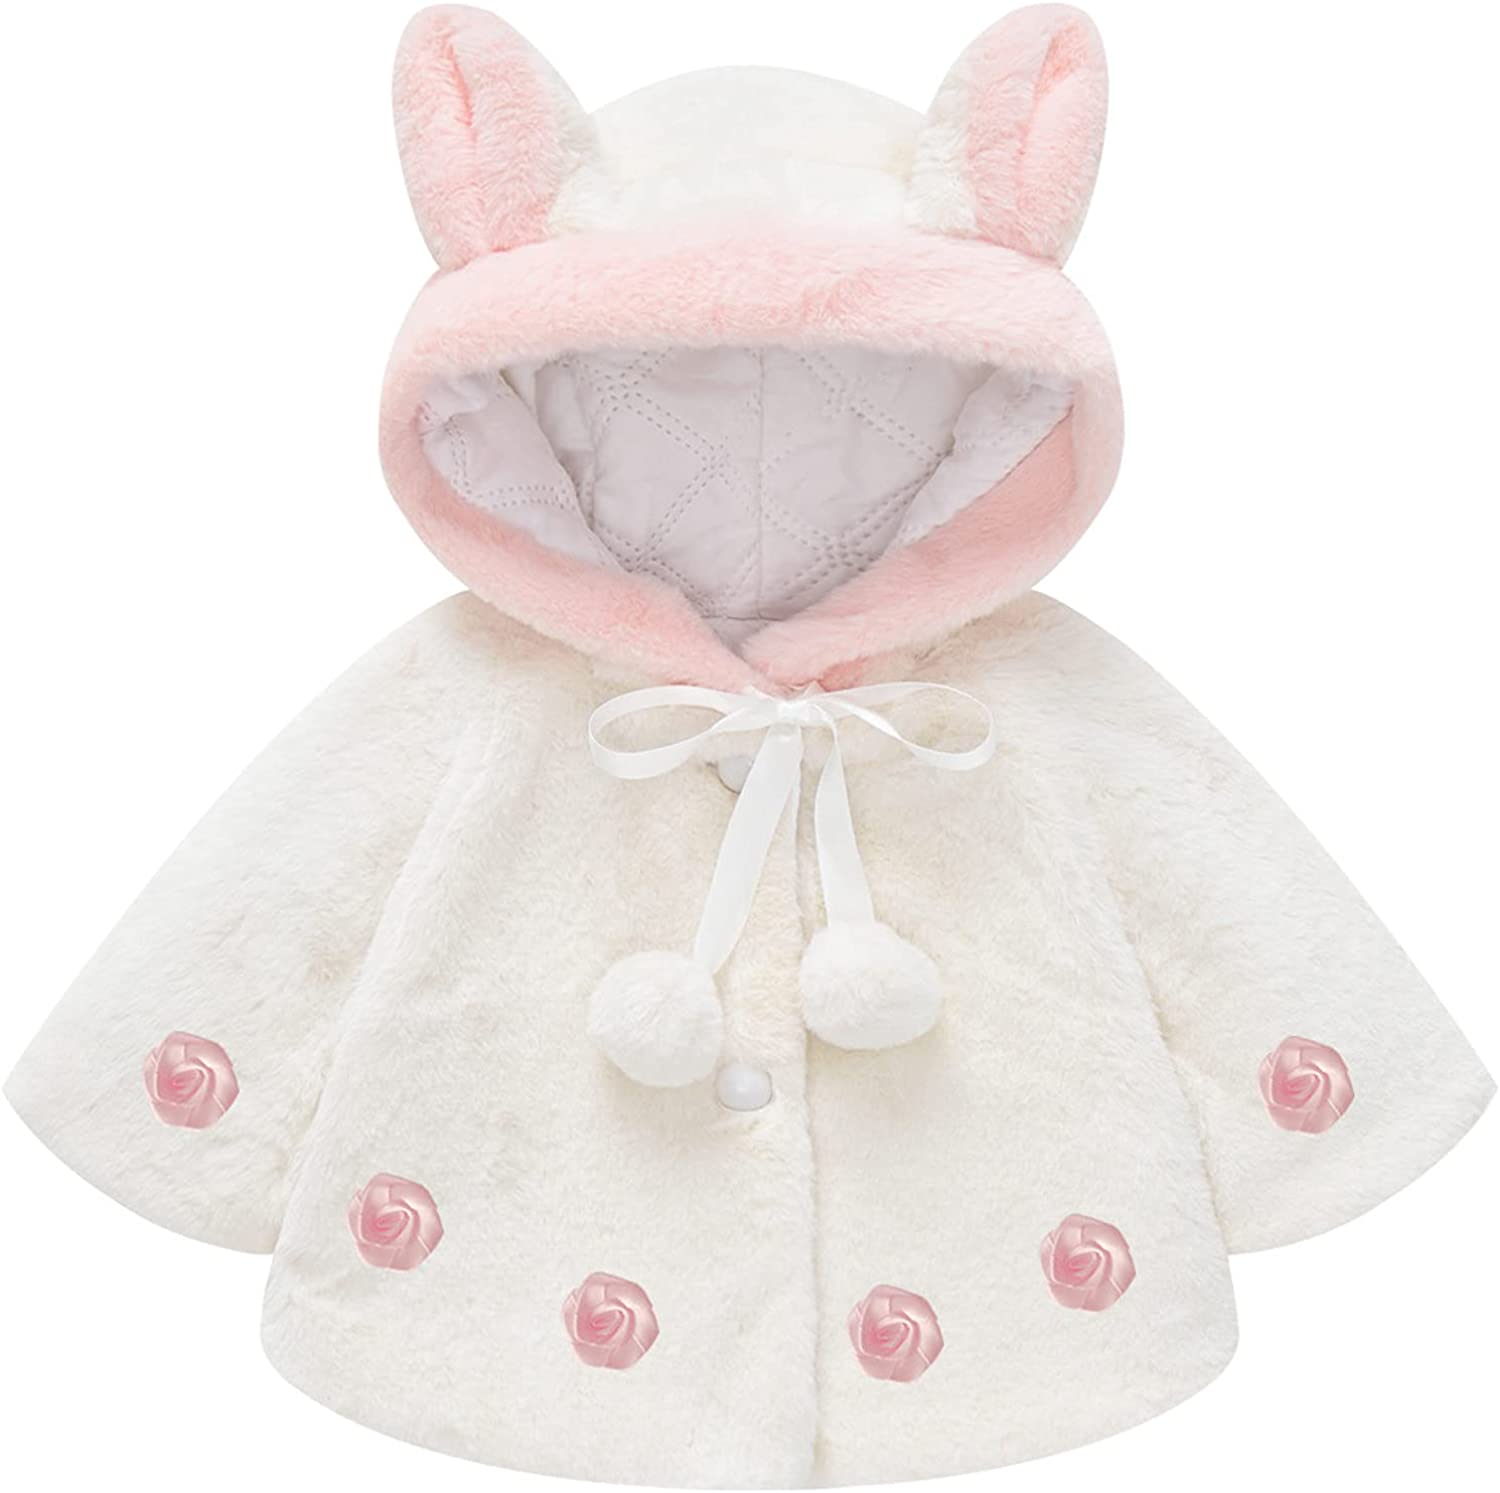 Toddler Infant Baby Boys Girls Cloak Coat Clothes Hooded Flannel Shawl Cute